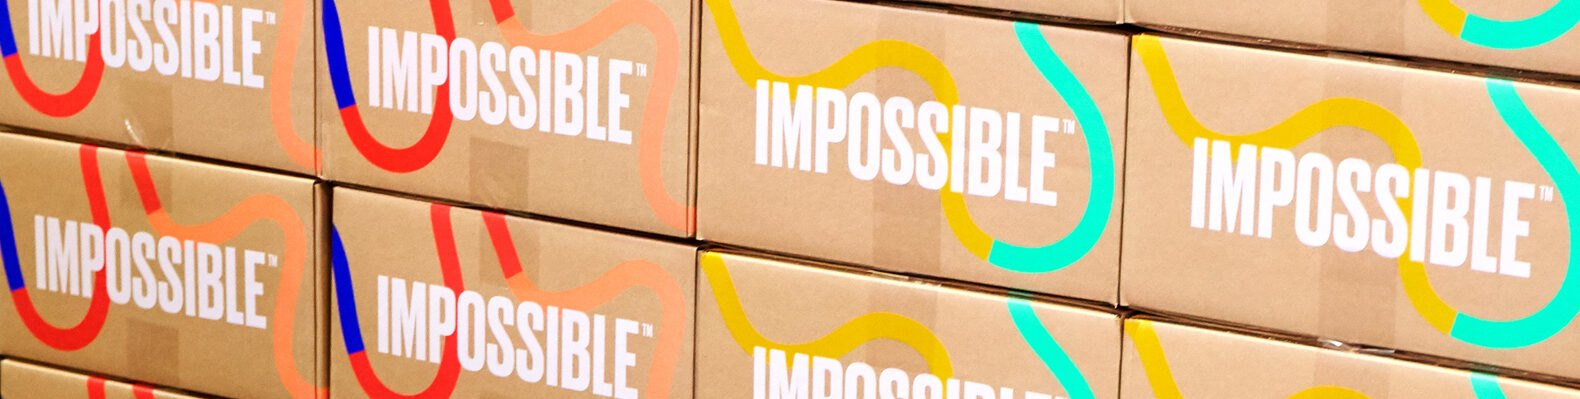 boxes with Impossible logo